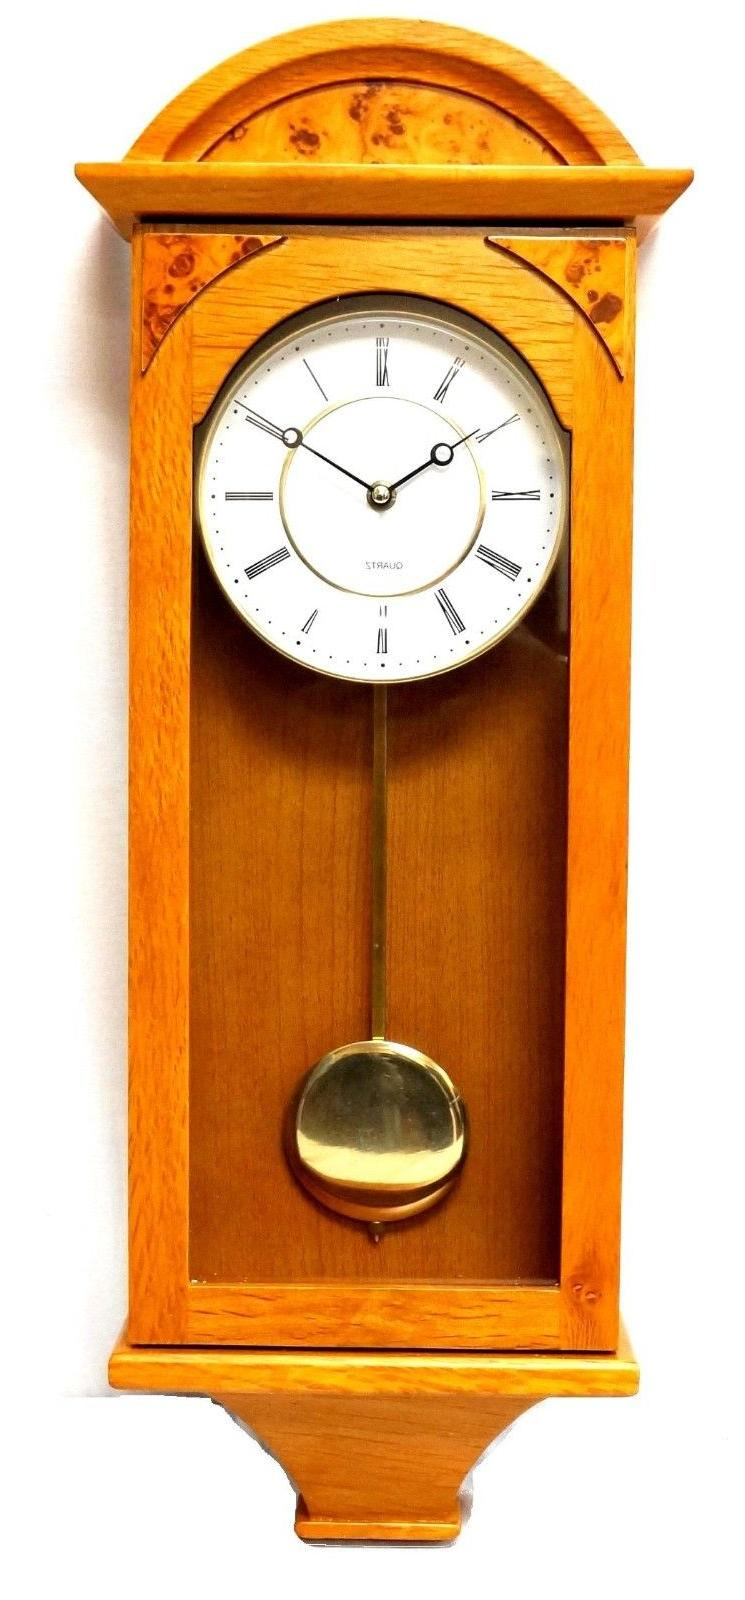 J&D Pendulum Wall Clock Silent classic Battery